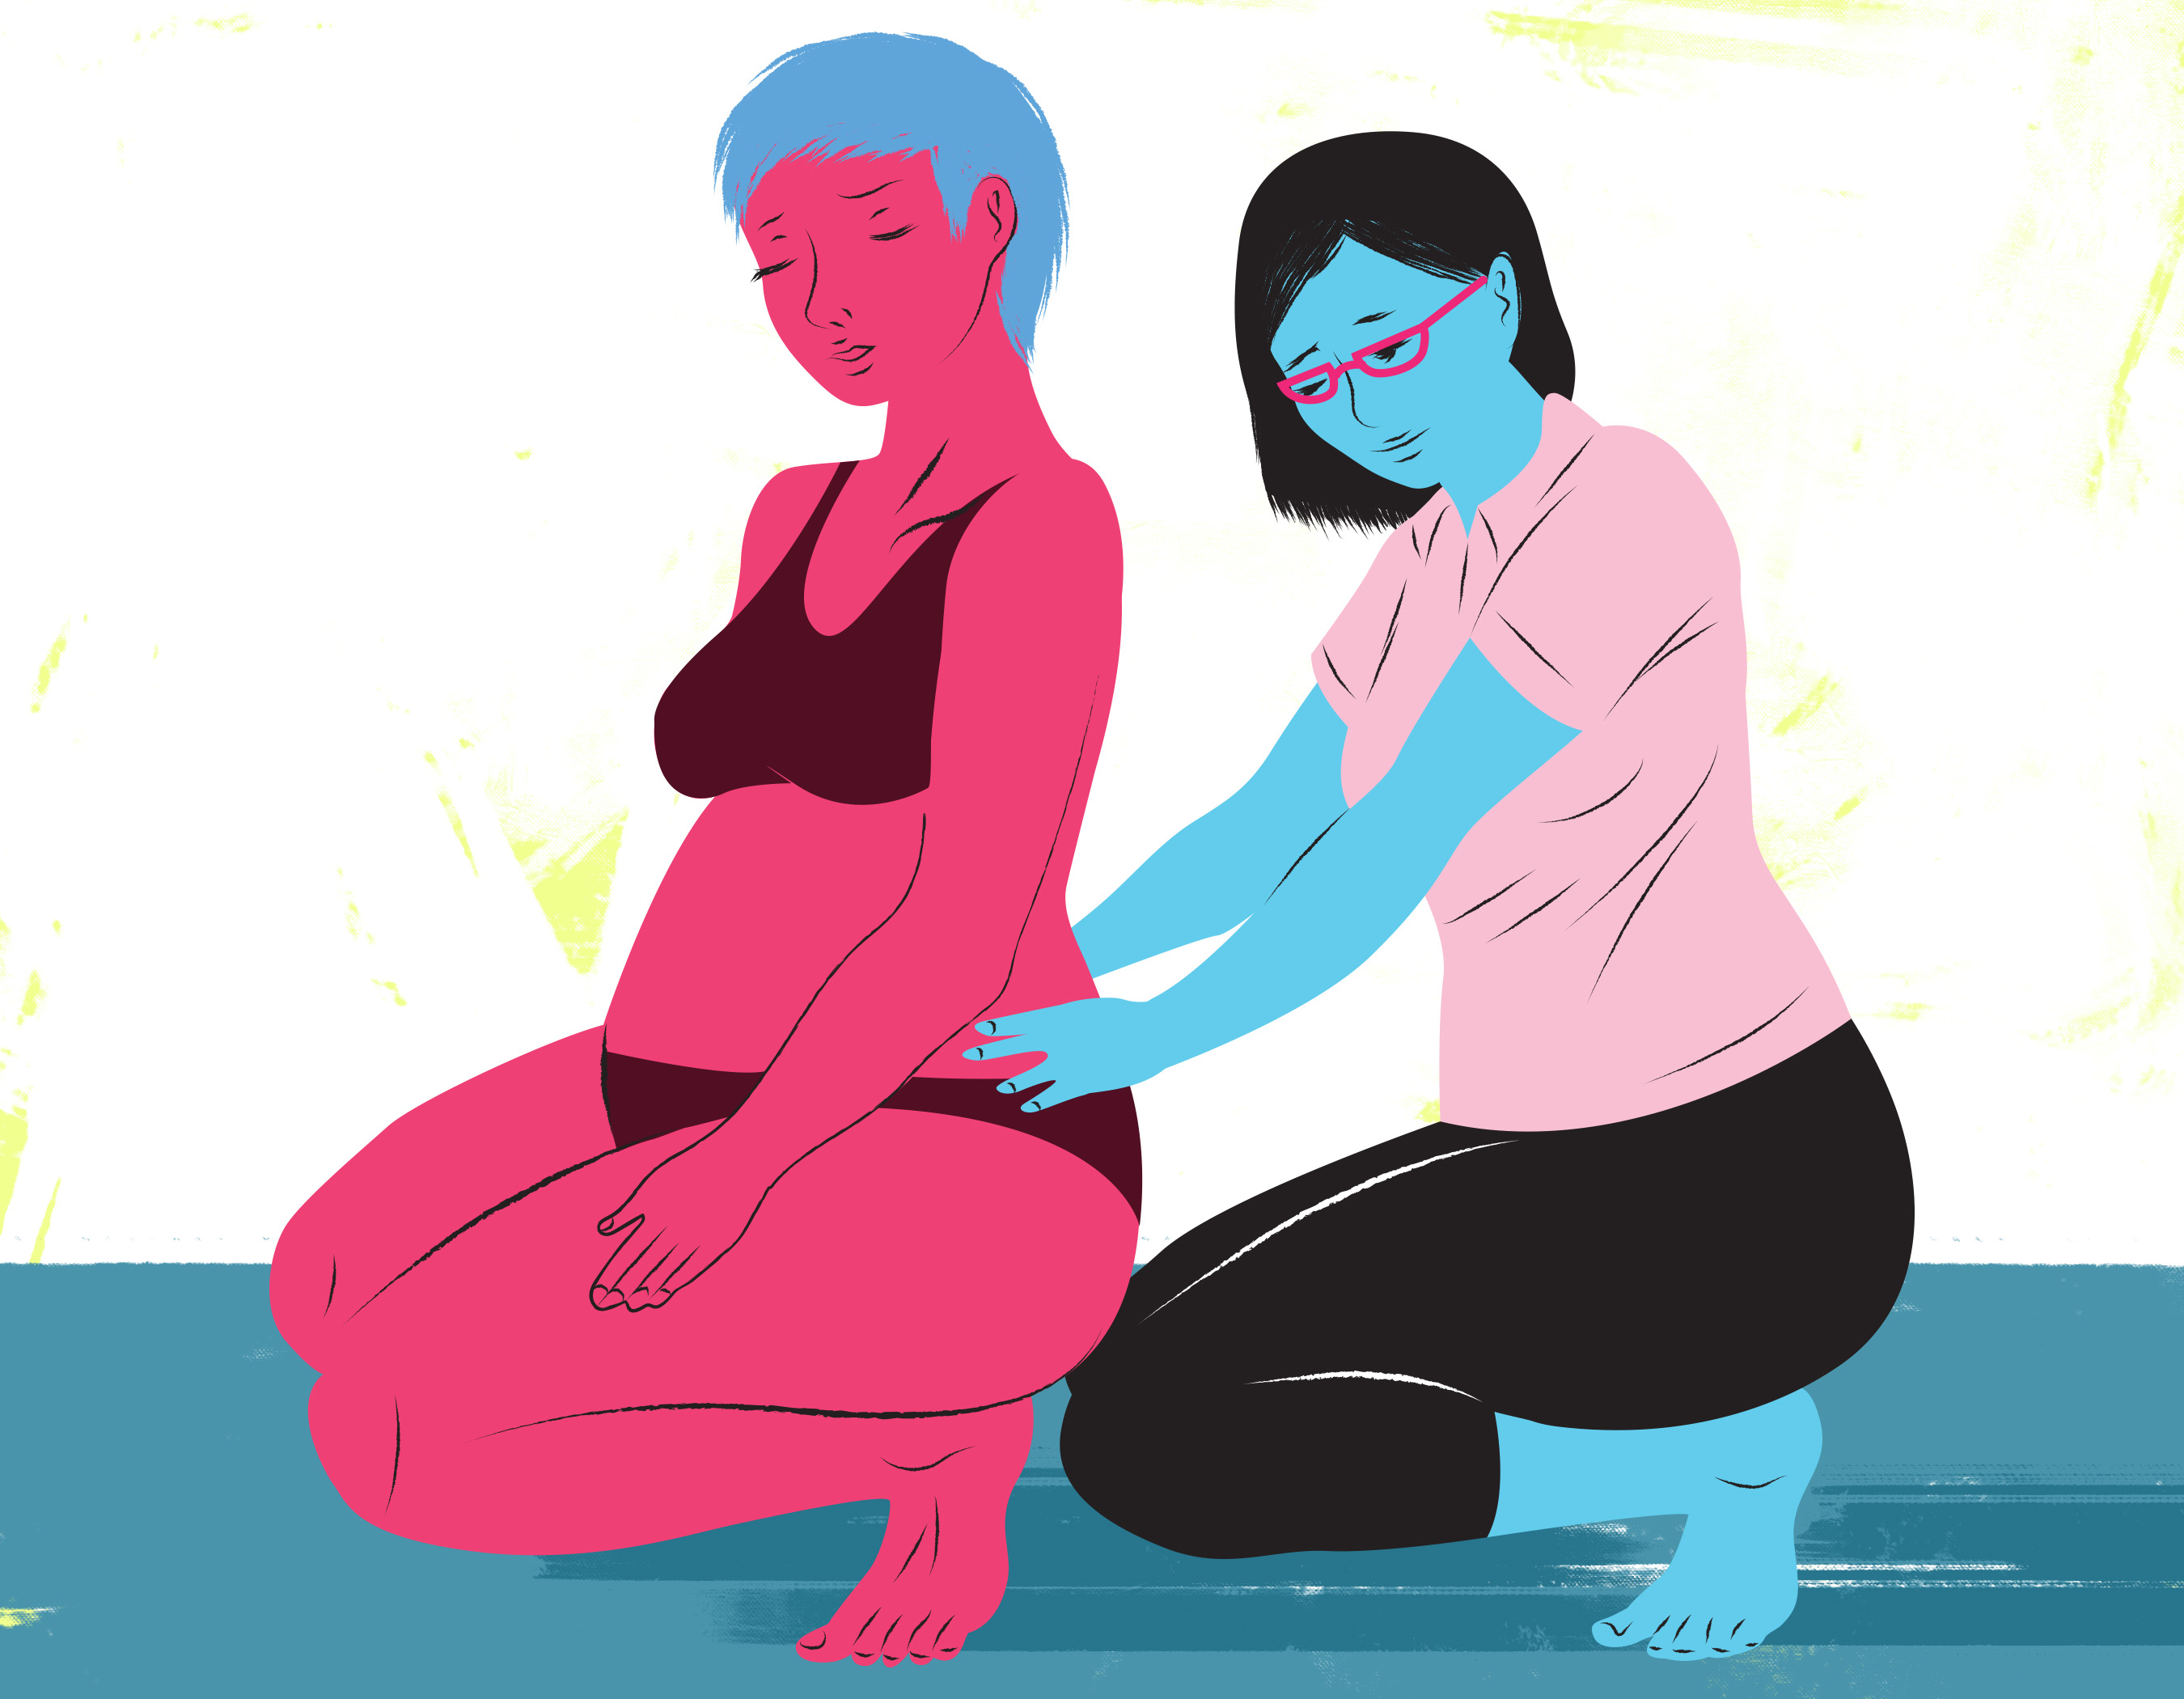 I Make Mother-Baby Art Featuring Doulas And Midwives